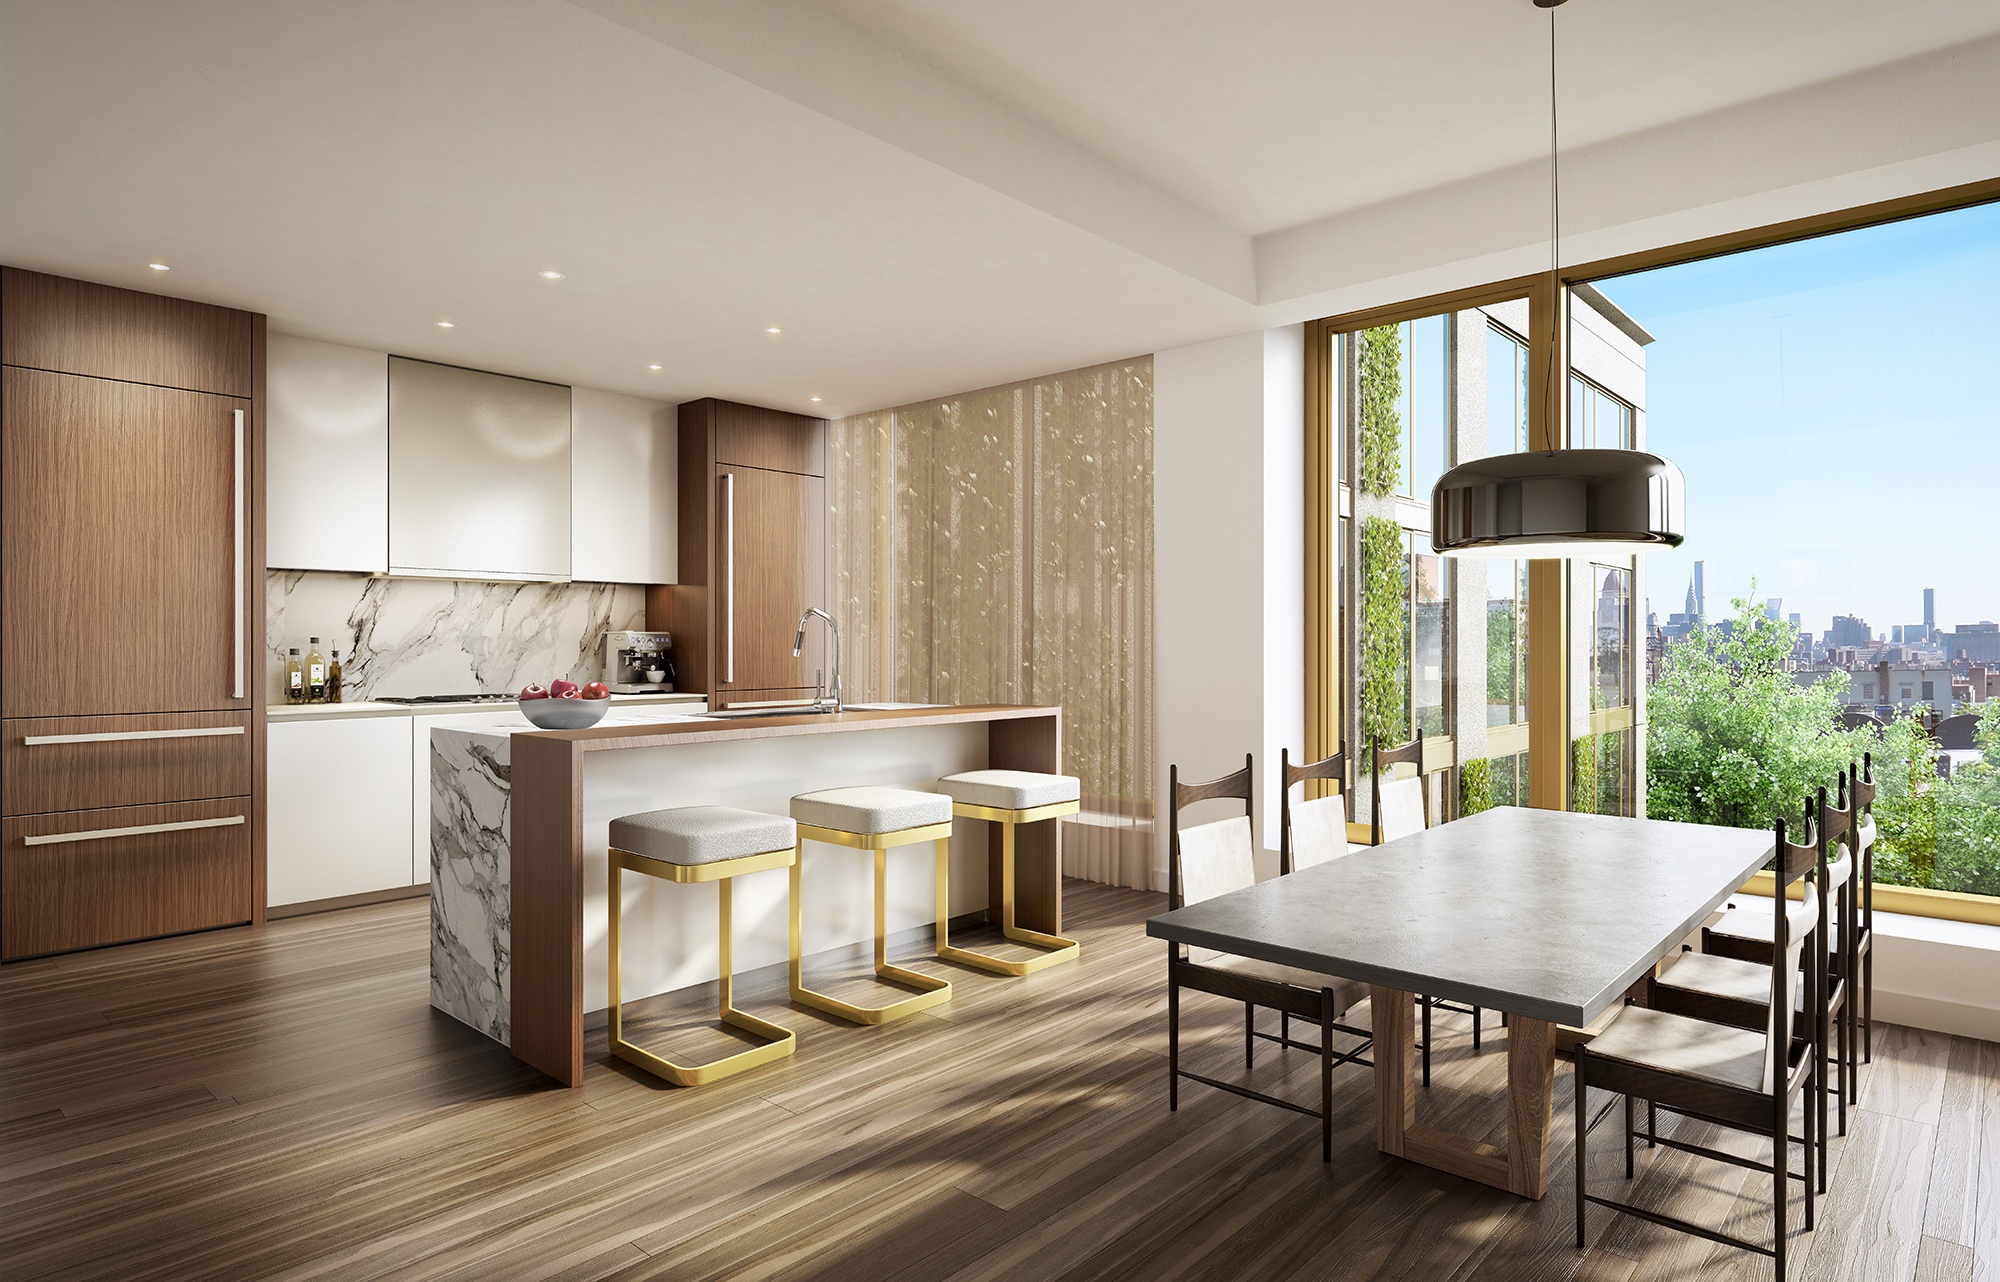 75 Kenmare by Kravitz Design Features Contemporary Aesthetic 75 kenmare by kravitz design 75 Kenmare by Kravitz Design Features Contemporary Aesthetic 75 Kenmare by Kravitz Design Features Contemporary Aesthetic